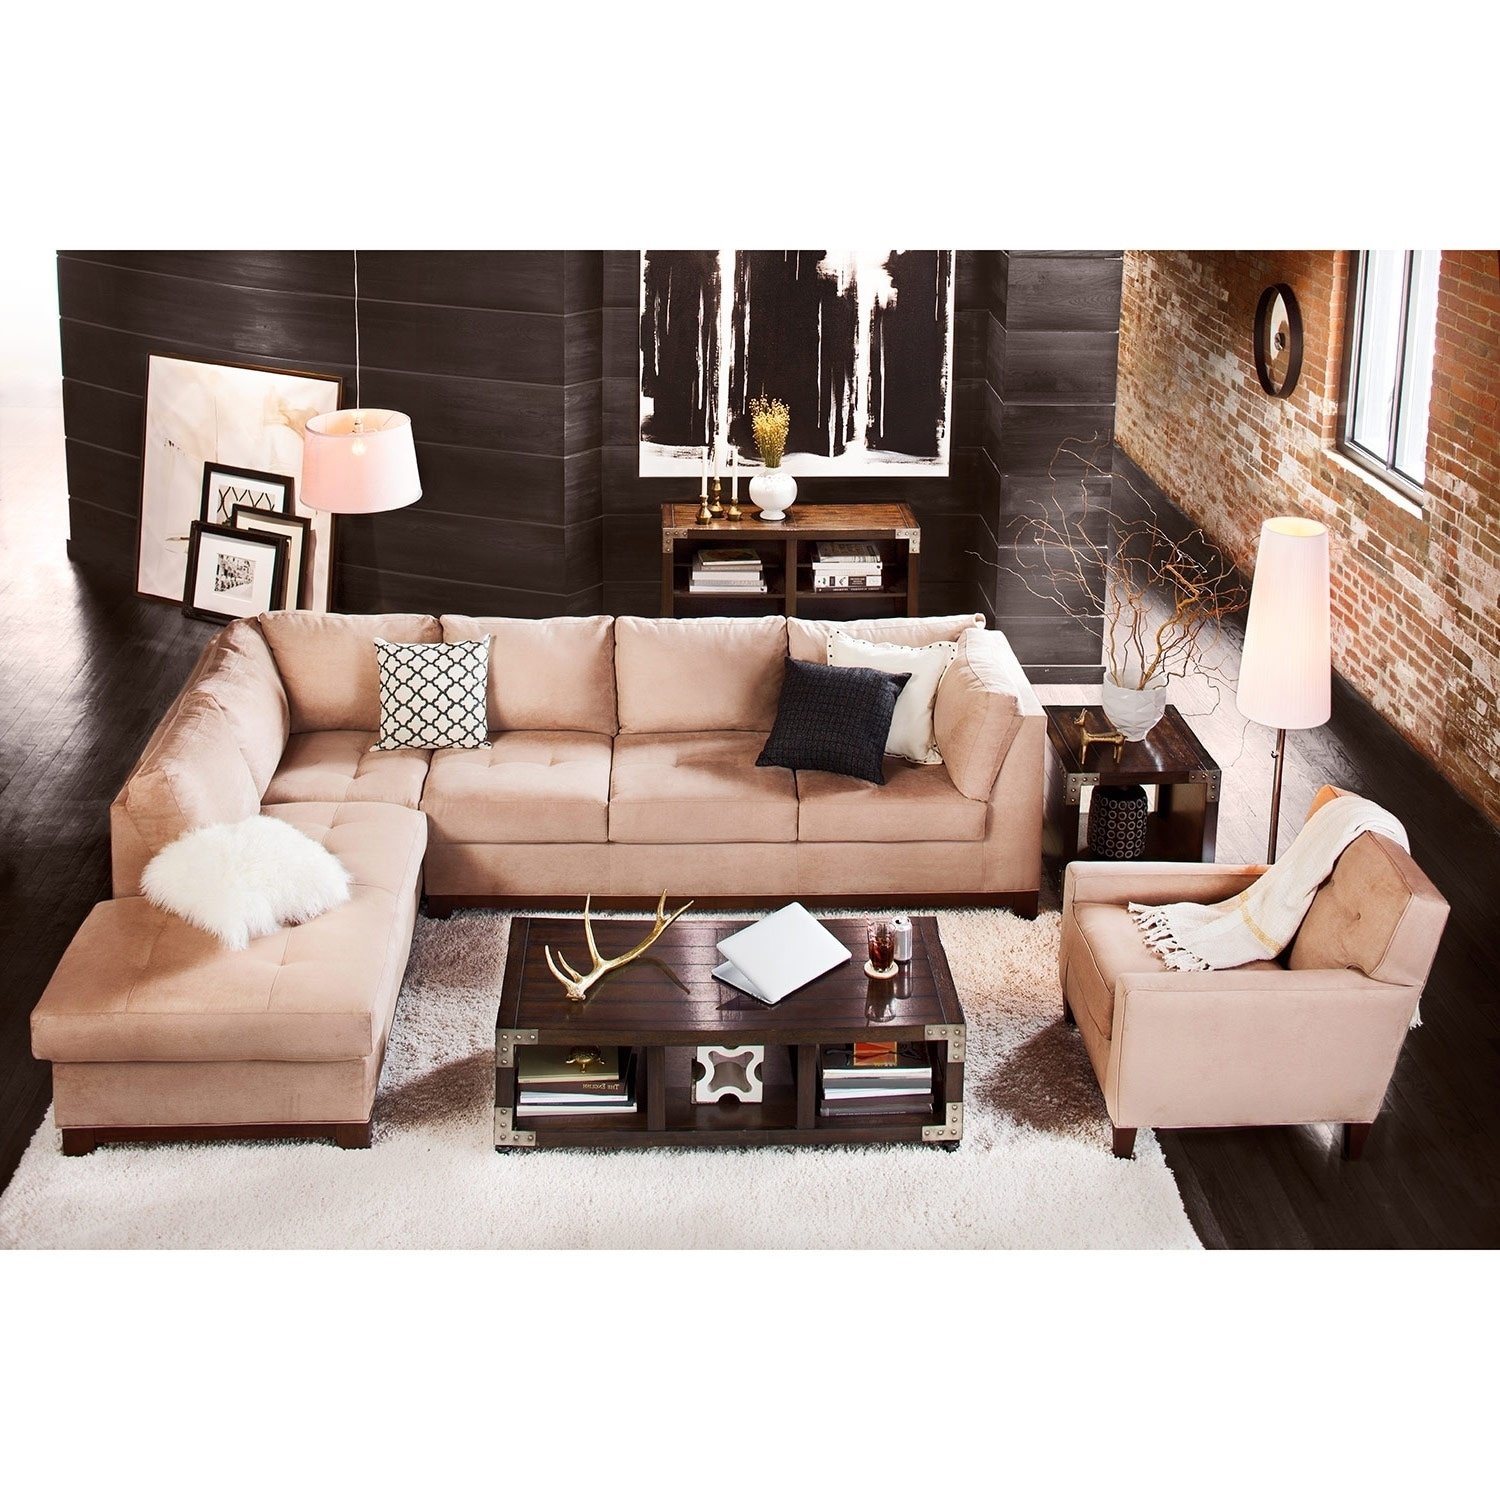 Soho 2 Piece Sectional With Left Facing Chaise – Cobblestone | Value Inside Arrowmask 2 Piece Sectionals With Sleeper & Right Facing Chaise (Image 22 of 25)